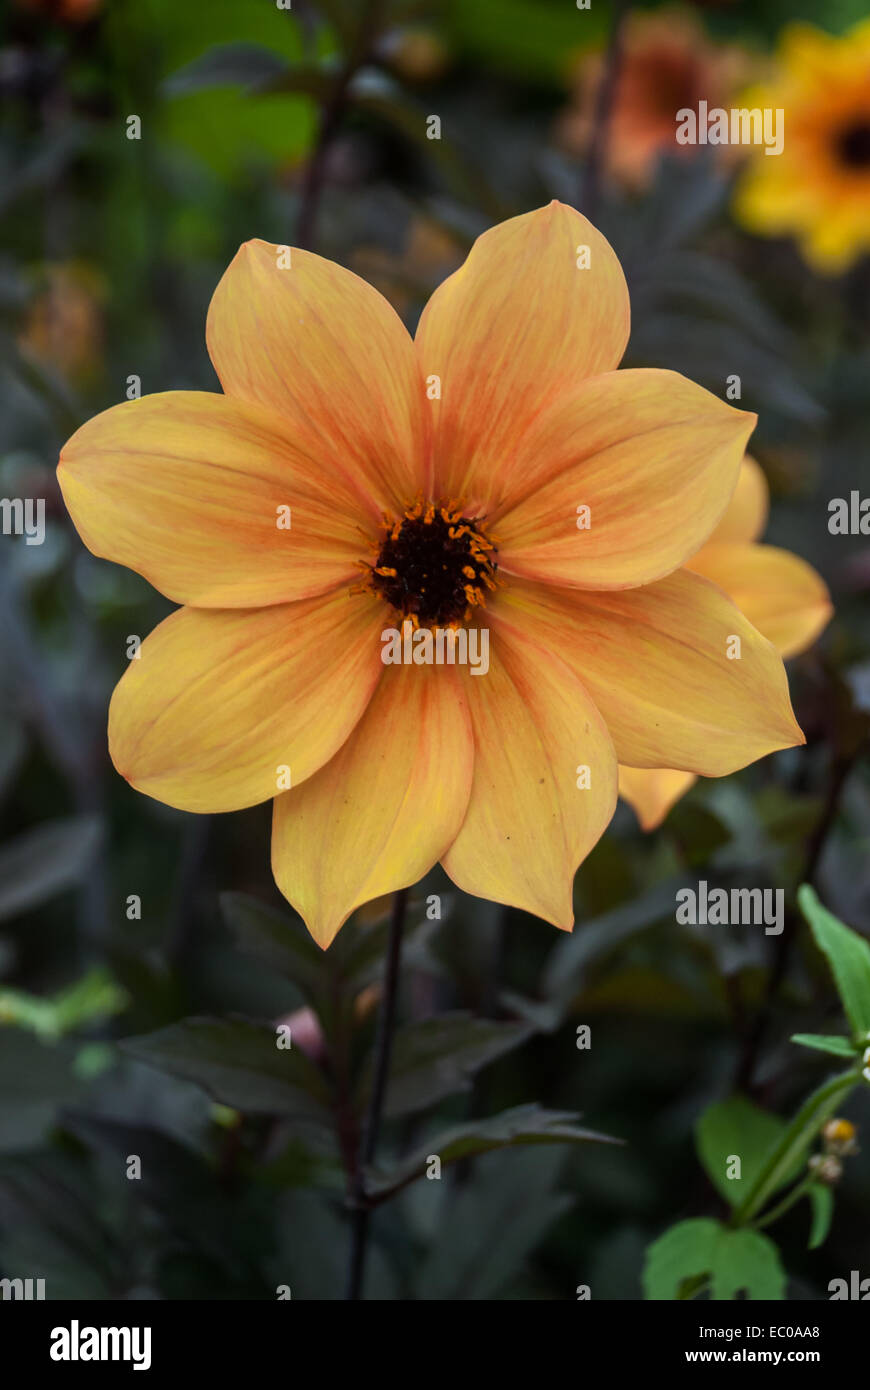 Yellow flower with brown center stock photos yellow flower with a soft yellow and orange flower with brown center stock image mightylinksfo